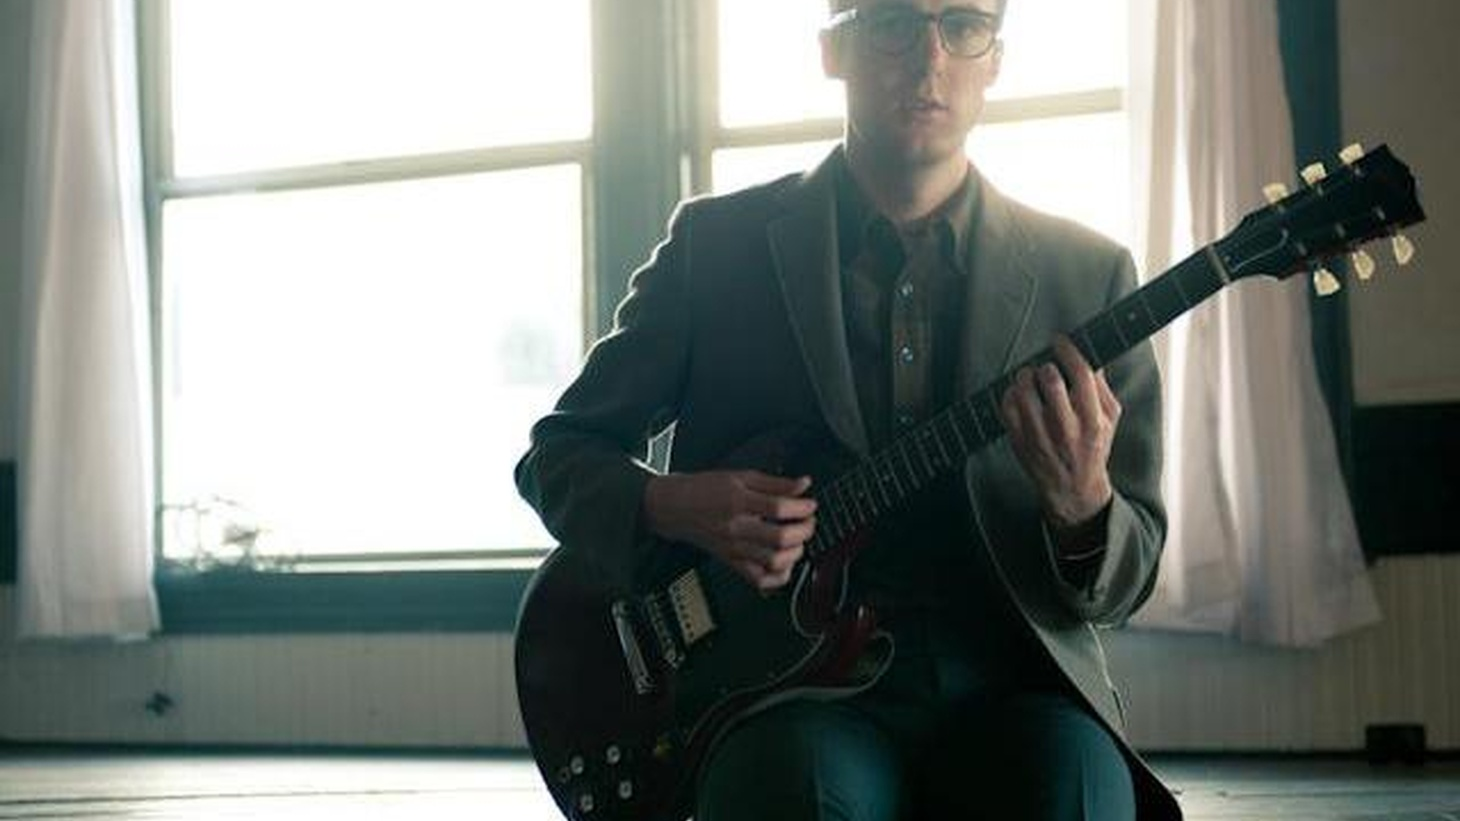 R&B fanatic Nick Waterhouse is part of a new breed of artists that pay tribute to old-school sound while adding a distinctive modern twist.